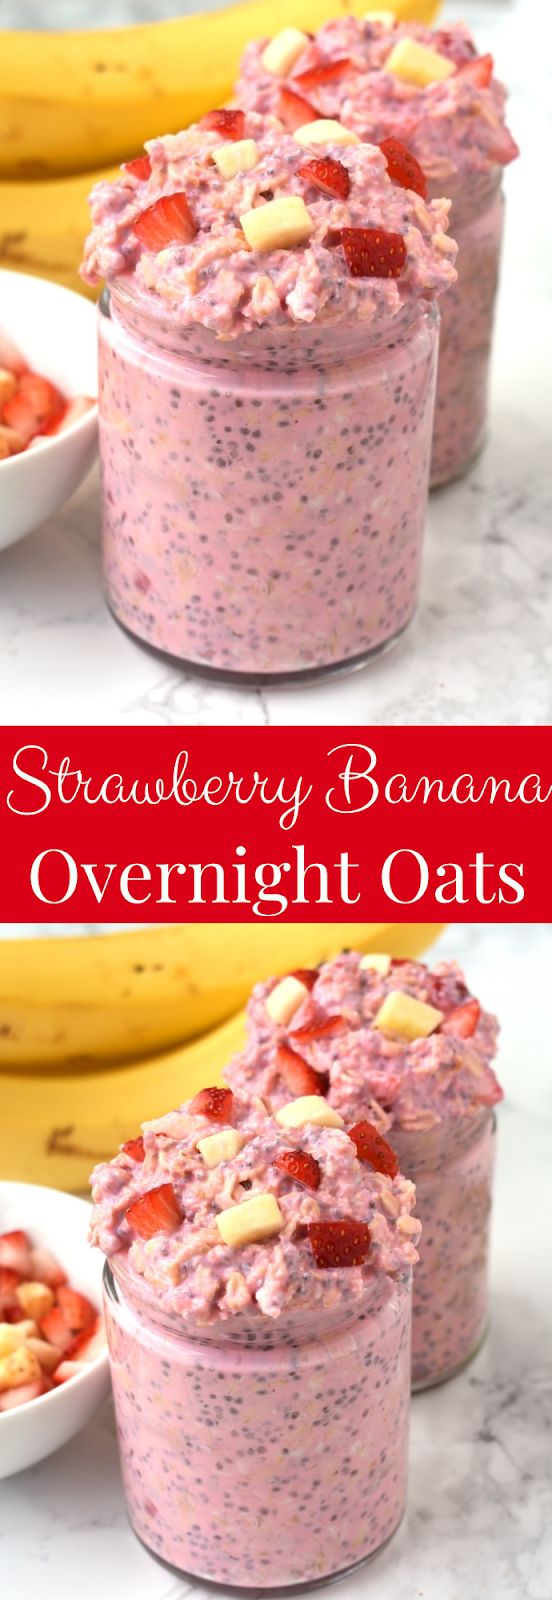 Strawberry Banana Overnight Oats recipe